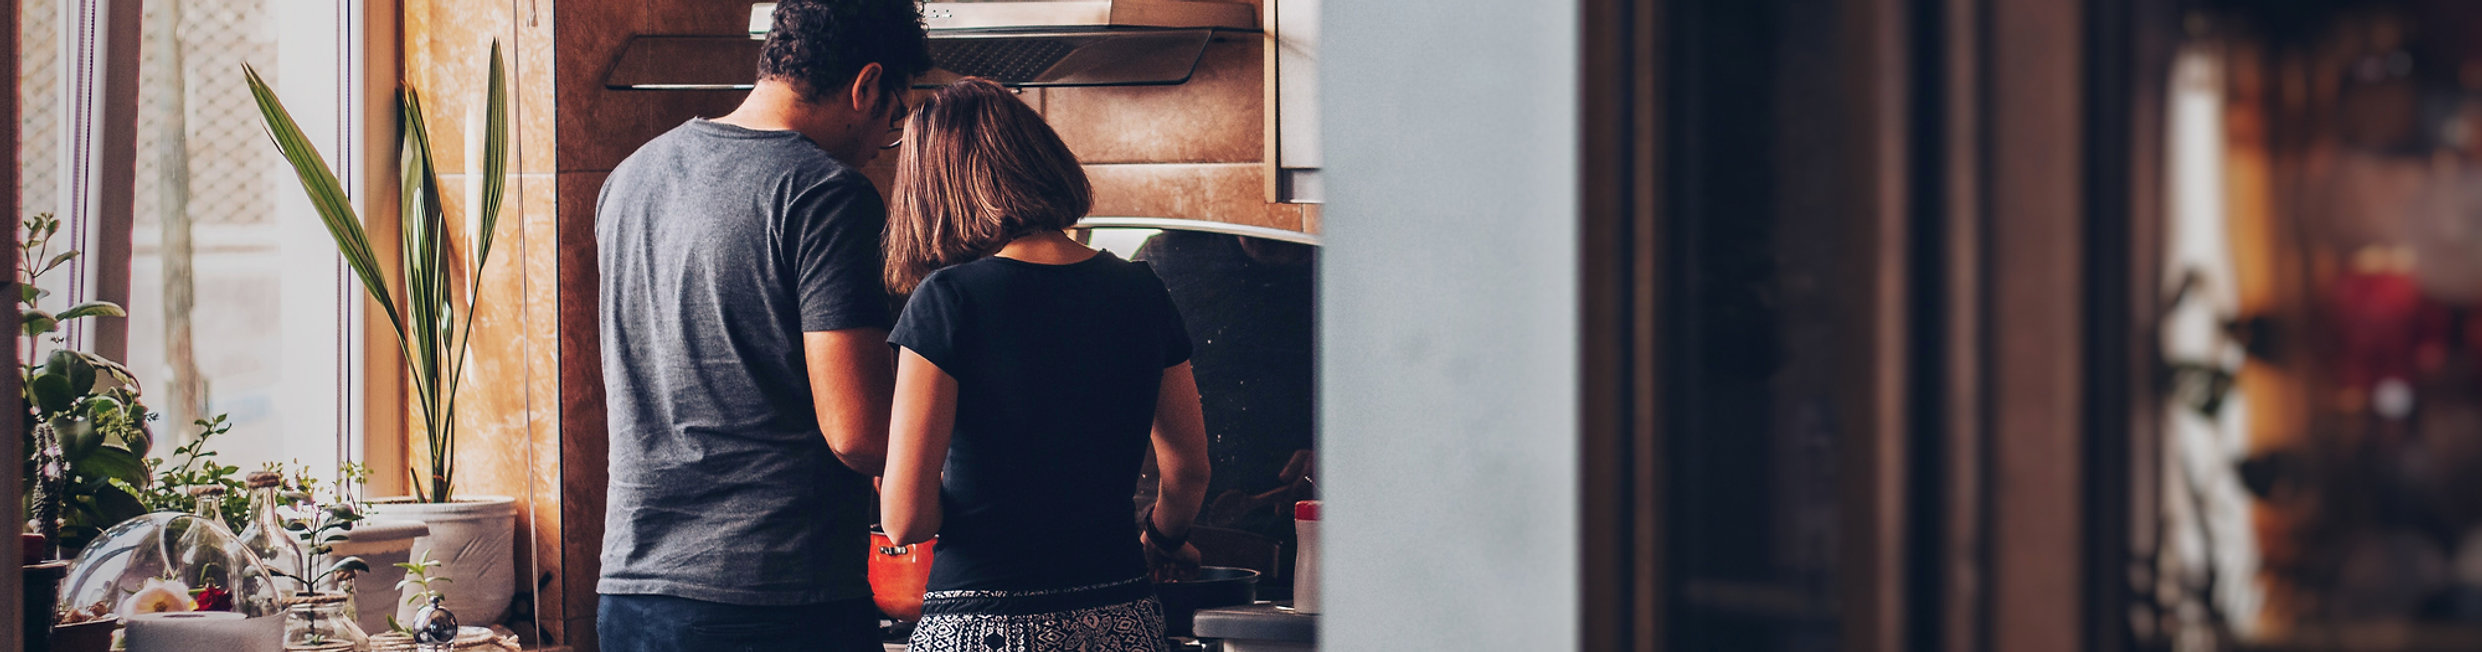 Tenant couple cooking at kitchen stove